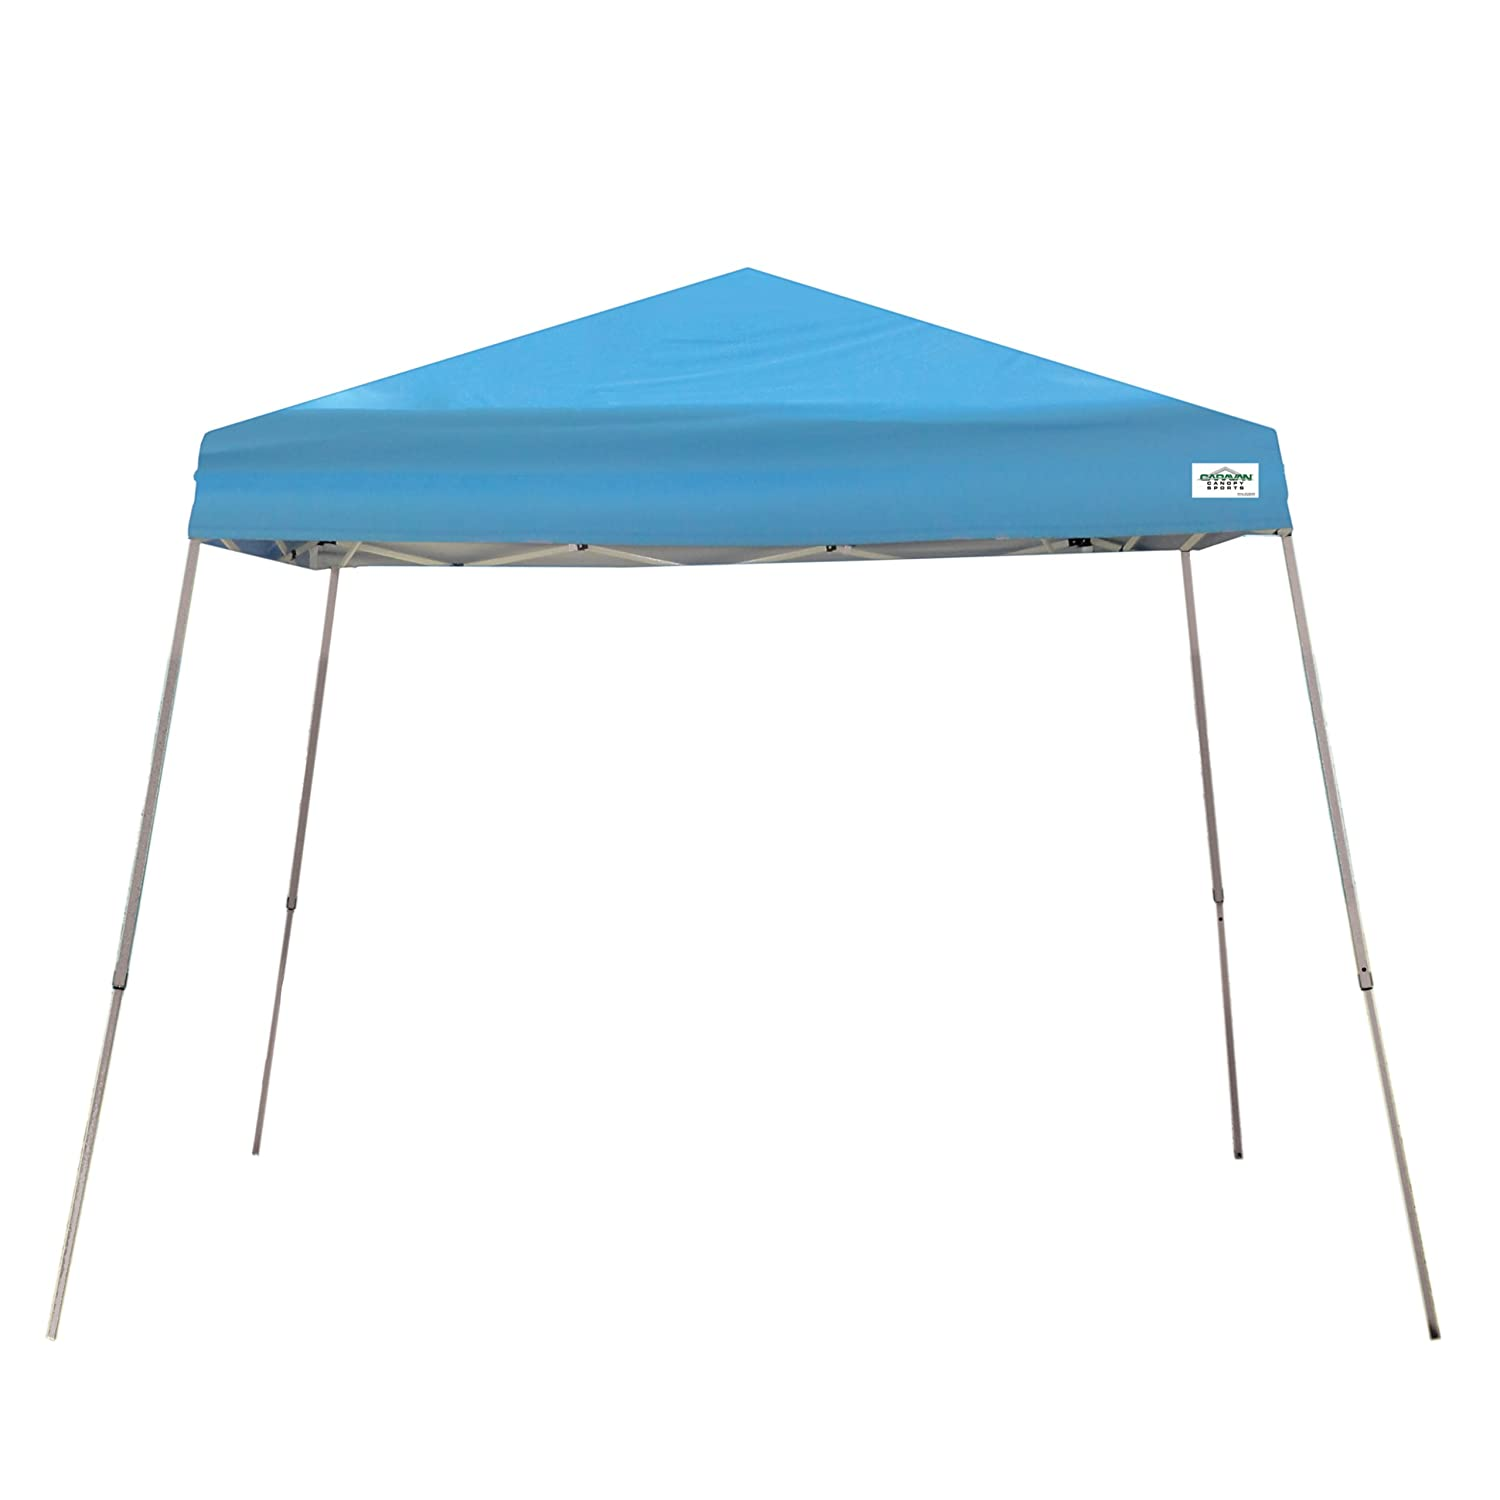 Caravan Canopy V-Series 10 X 10-Feet Instant Canopy, Blue Discontinued by Manufacturer